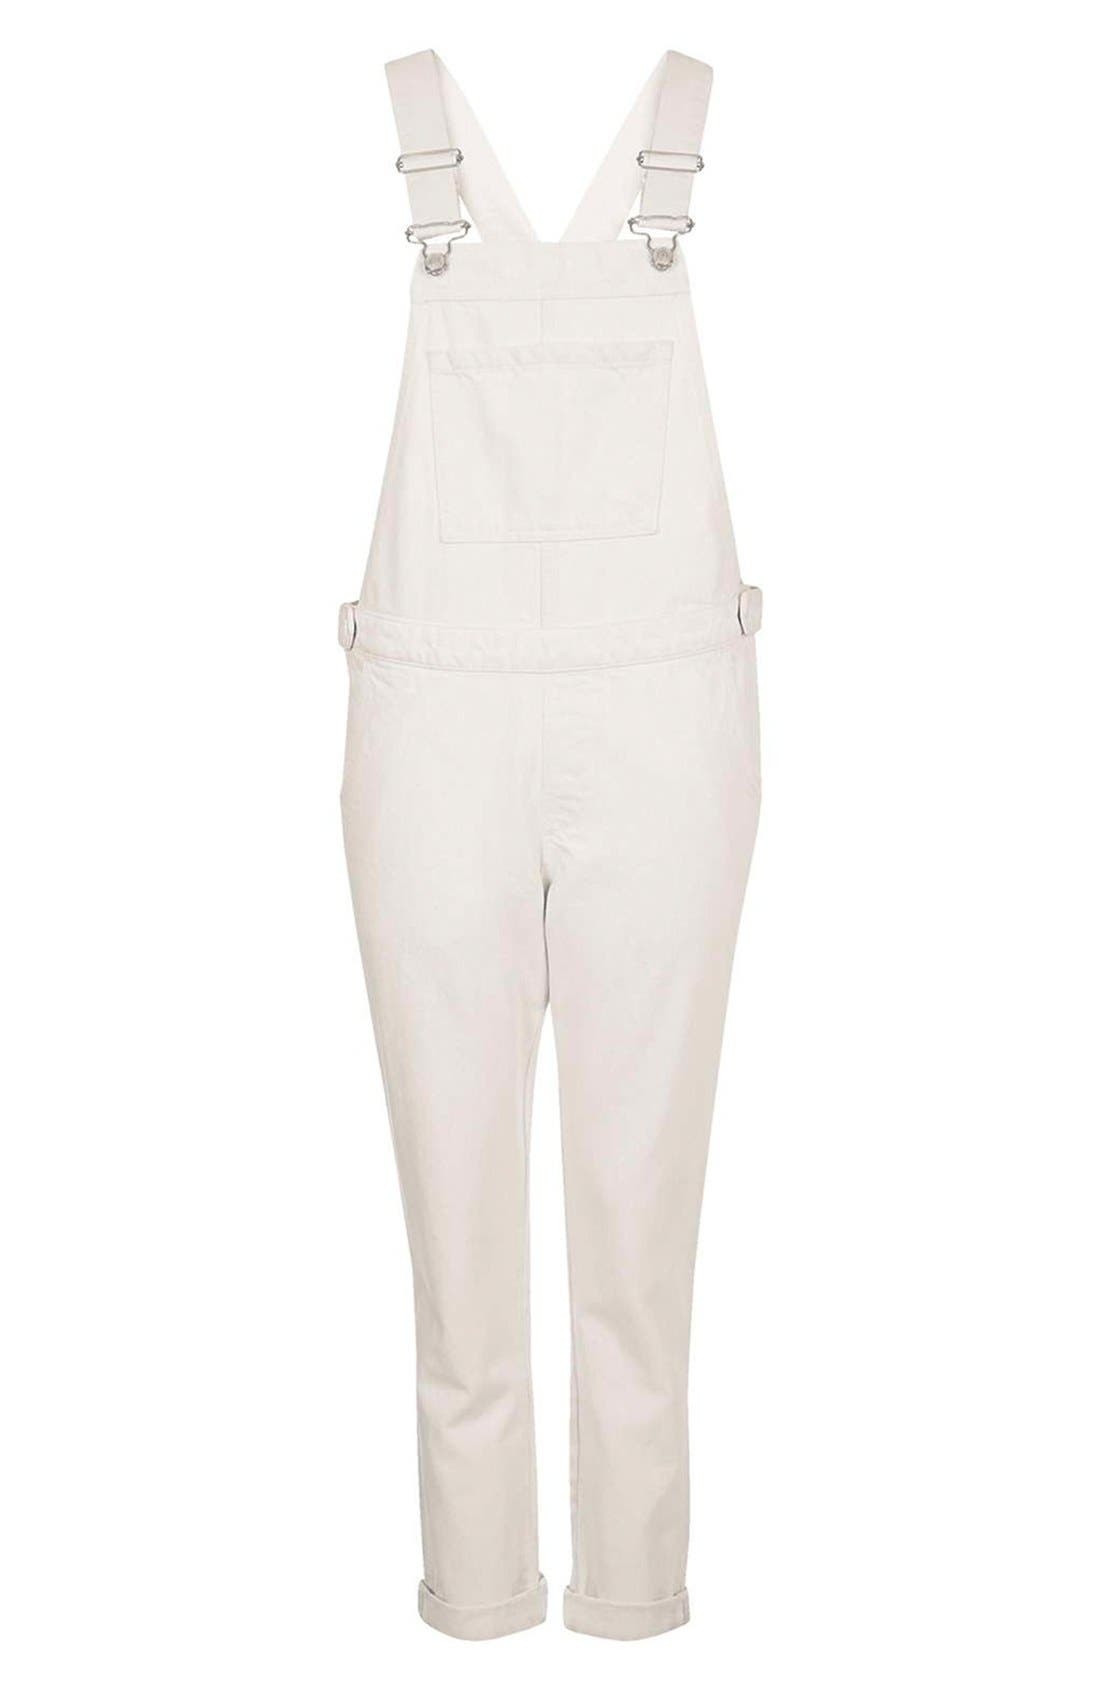 Moto Straight Leg Overalls,                             Alternate thumbnail 2, color,                             900